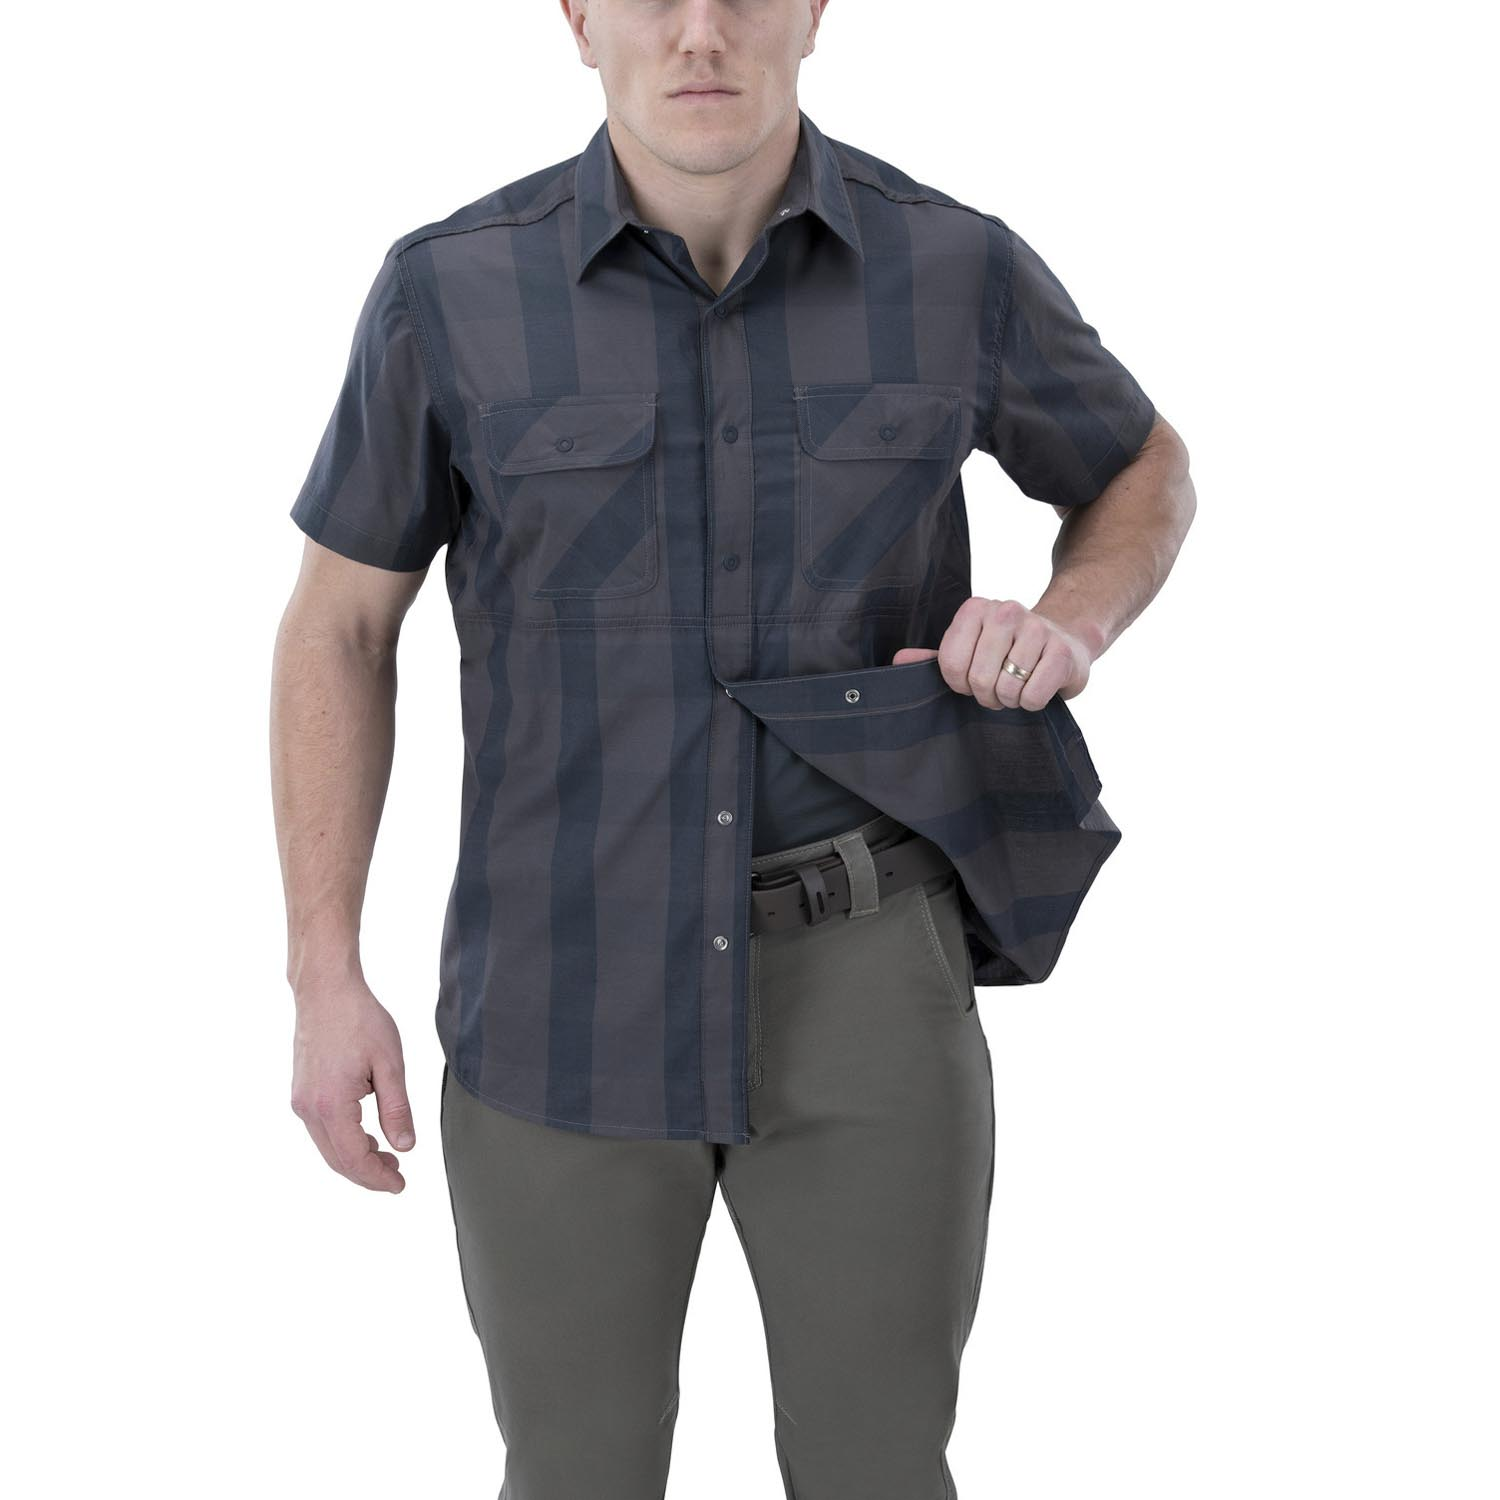 Vertx Guardian 2.0 Short Sleeve Shirt